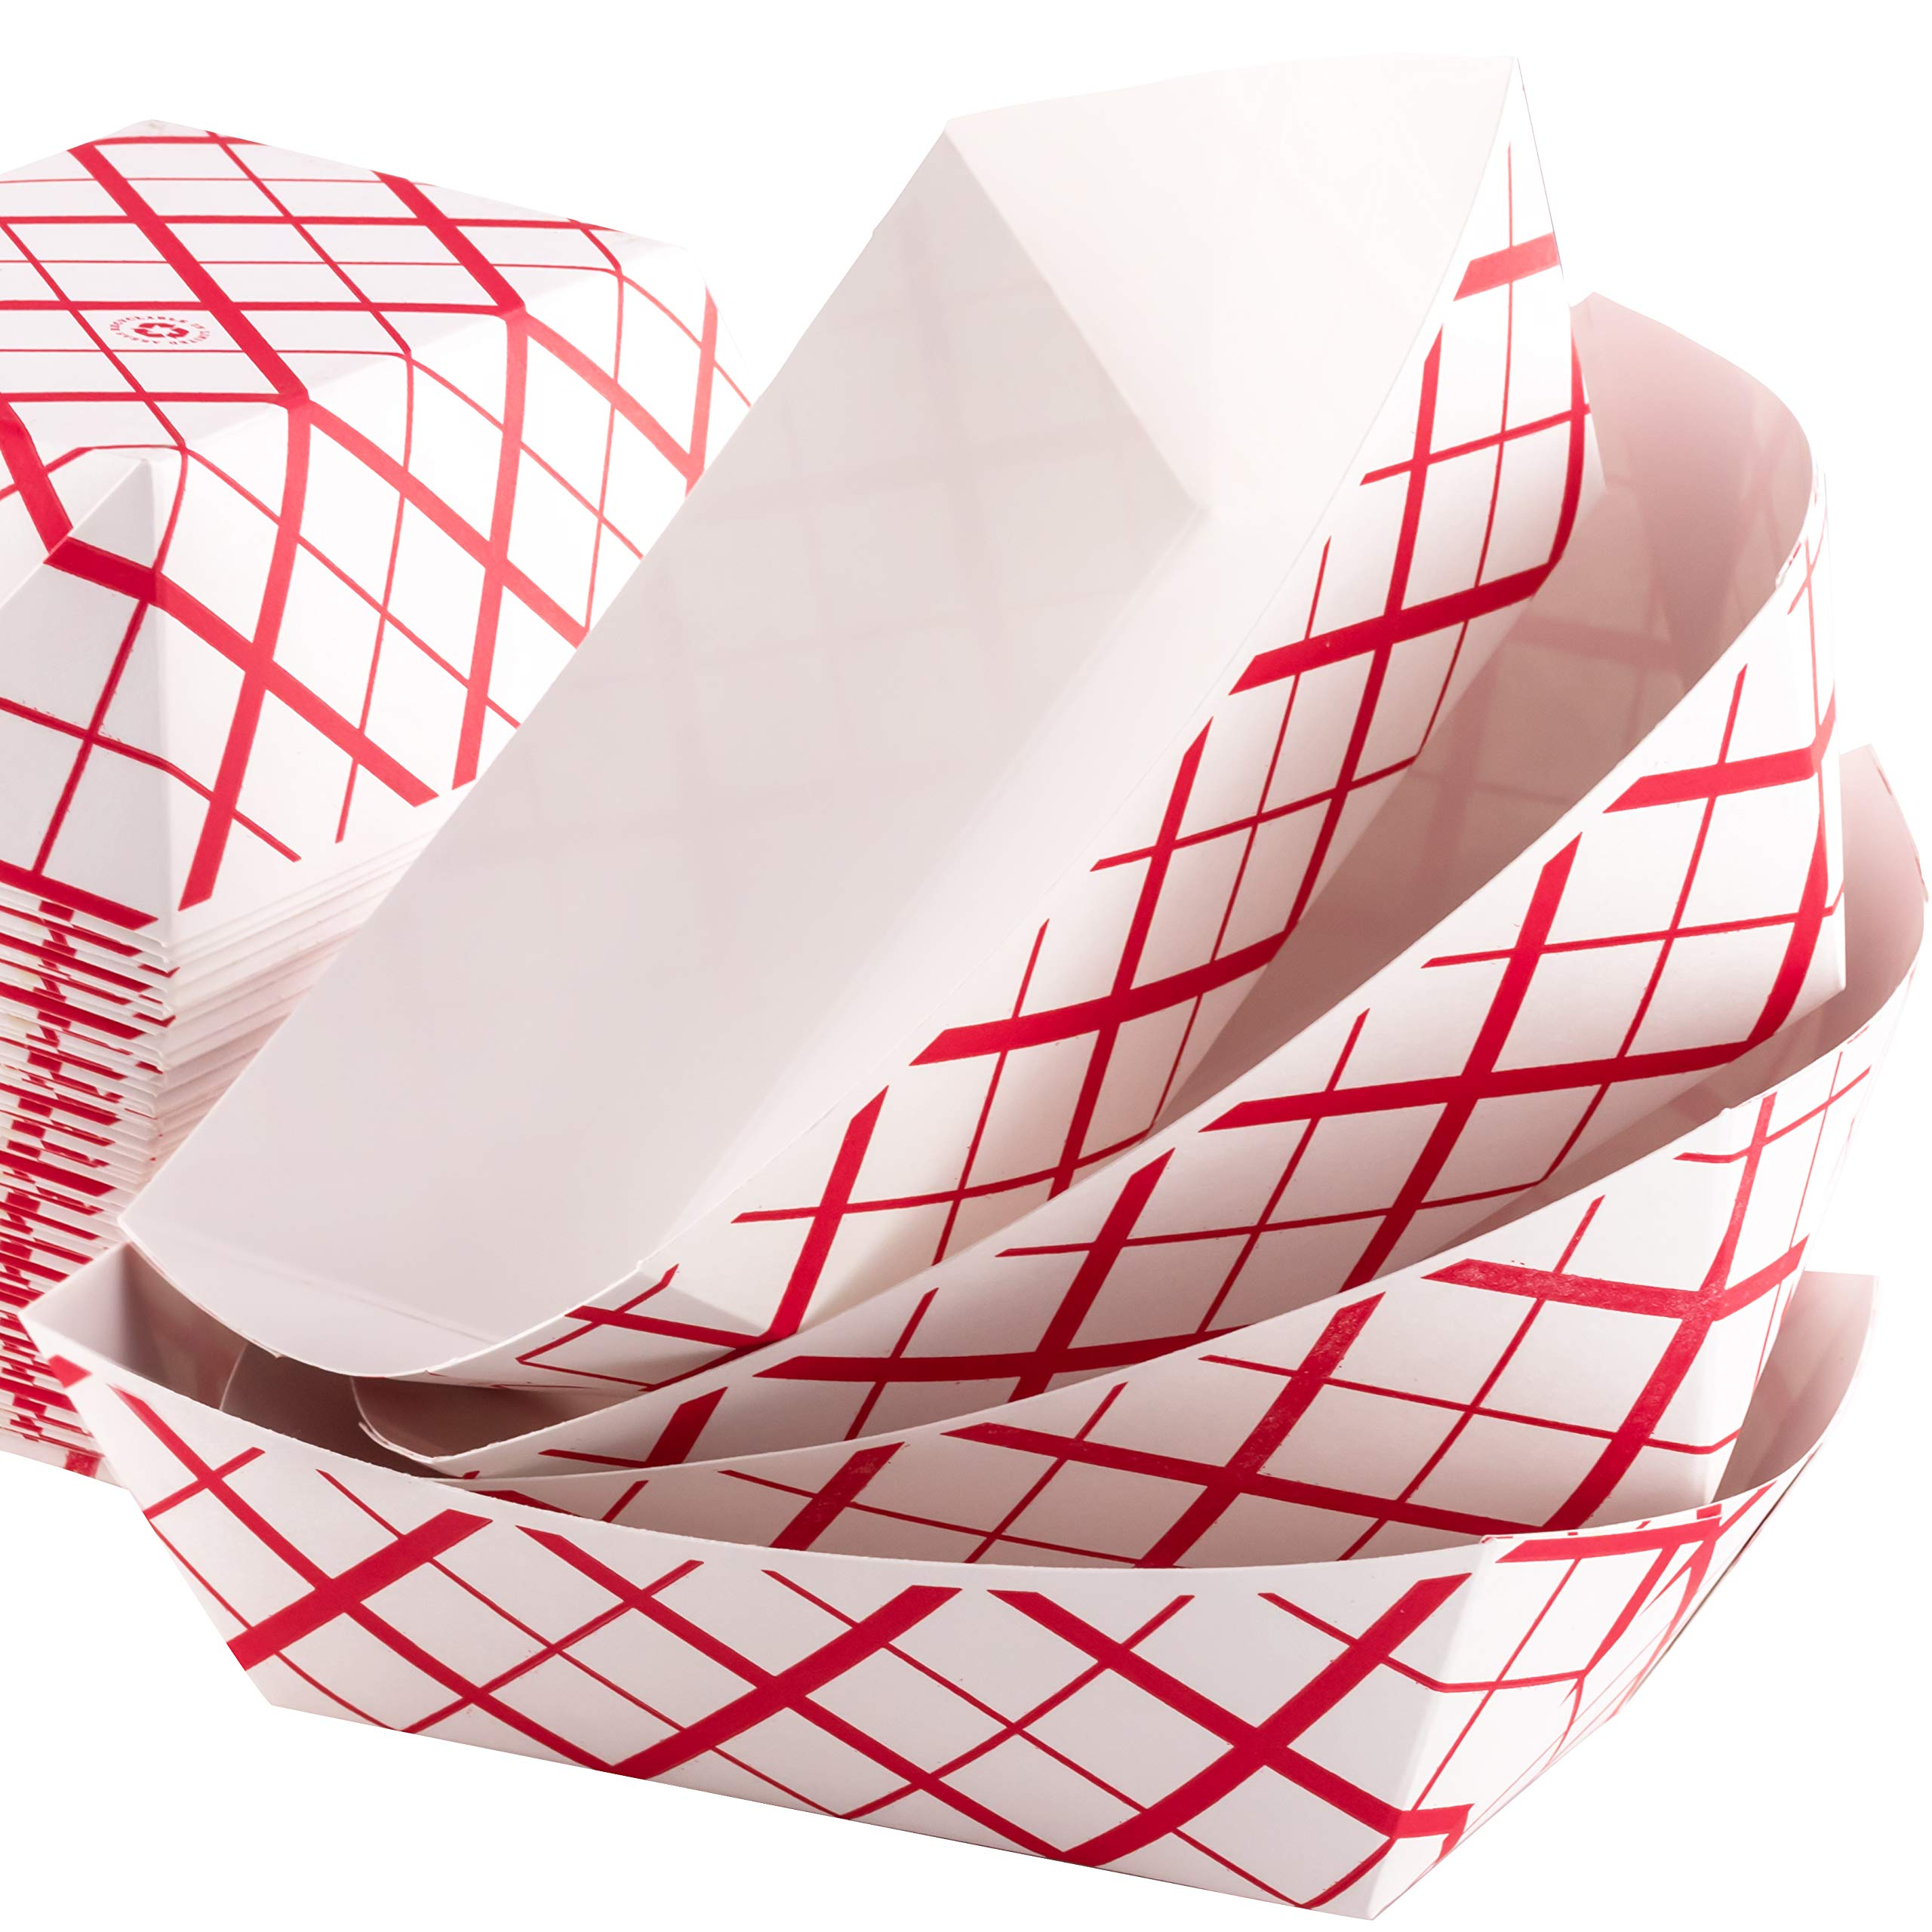 Grease-Proof Sturdy Food Trays 2 lb Capacity 100 Pack by Eucatus. Serve Hot or Cold Snacks in These Classic Carnival Style Checkered Paper Baskets. Perfect for Concession Stand or Circus Party Fare!